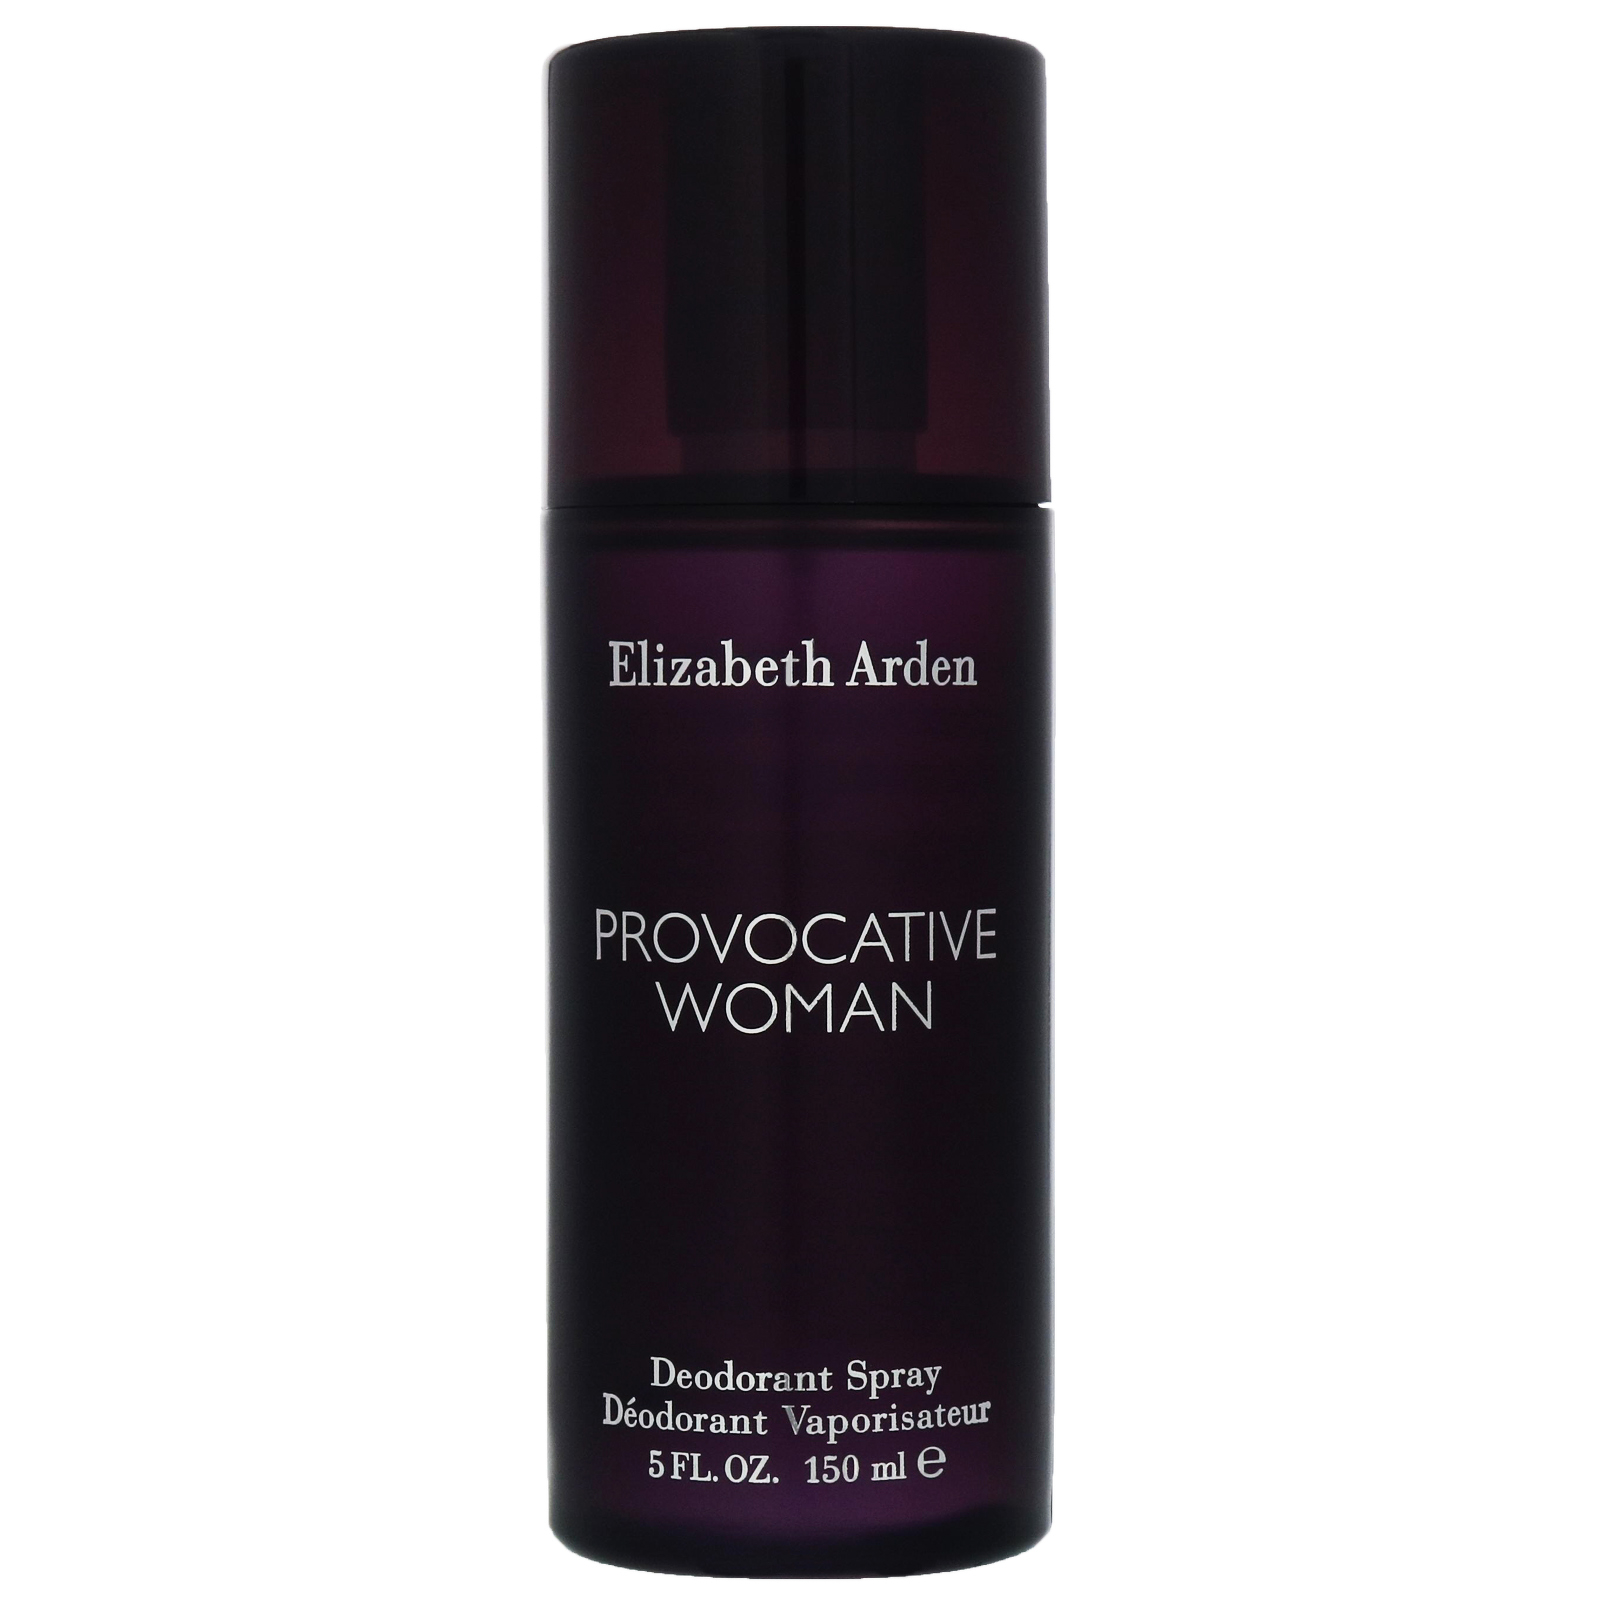 Elizabeth Arden Provocative Woman Deodorant Spray 150ml / 5 fl.oz.